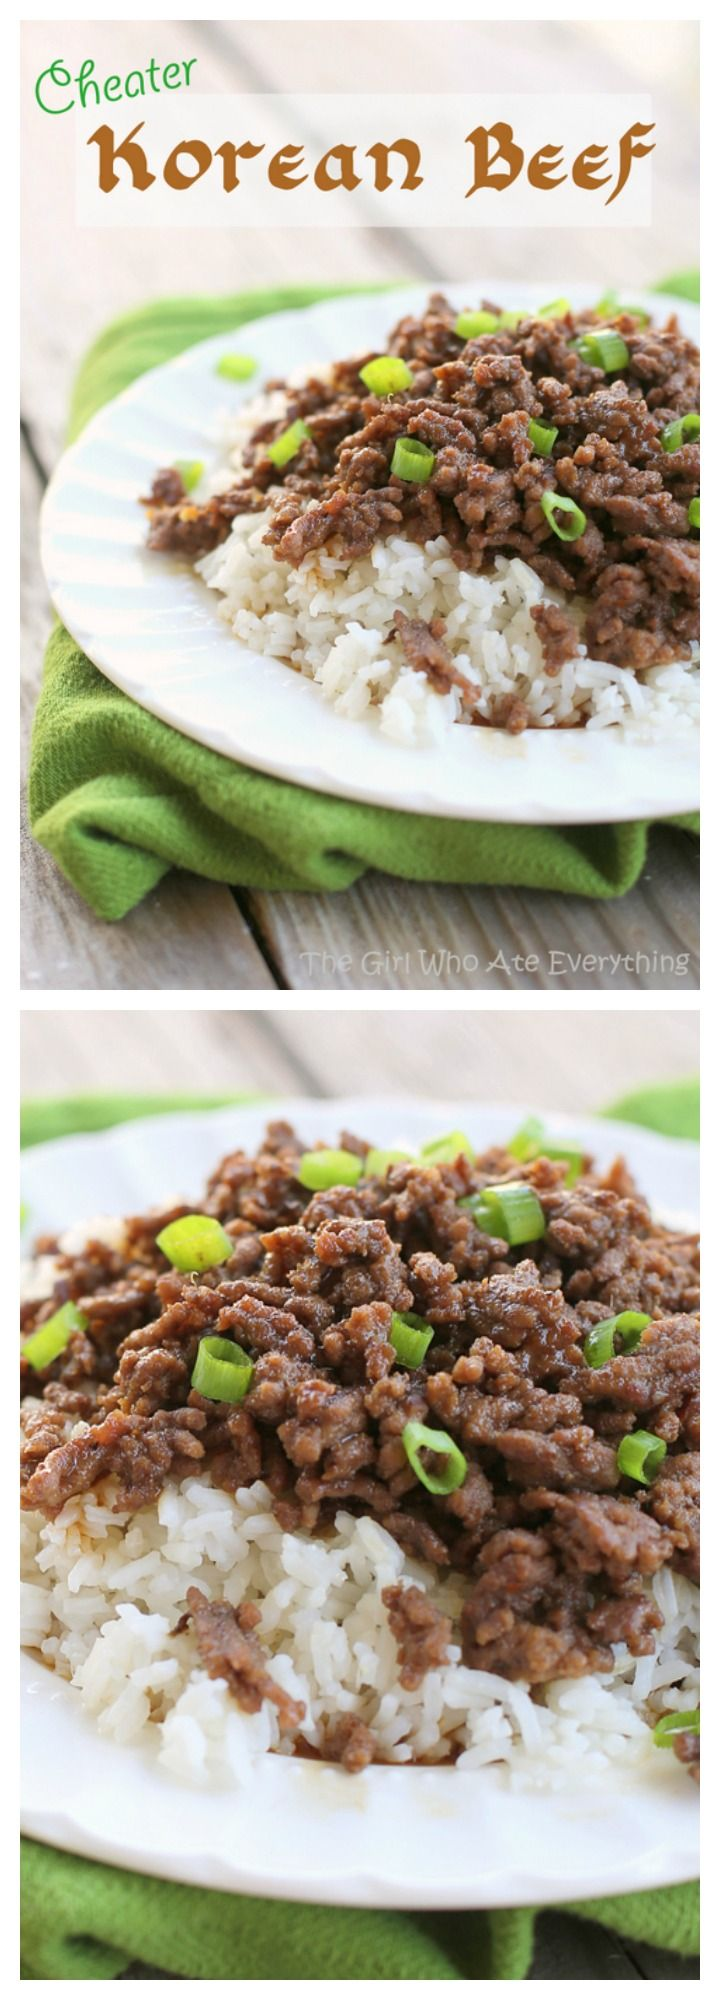 Cheater Korean Beef - a few shortcuts in this flavorful weeknight dinner. I cooked it in under 15 minutes. the-girl-who-ate-everything.com